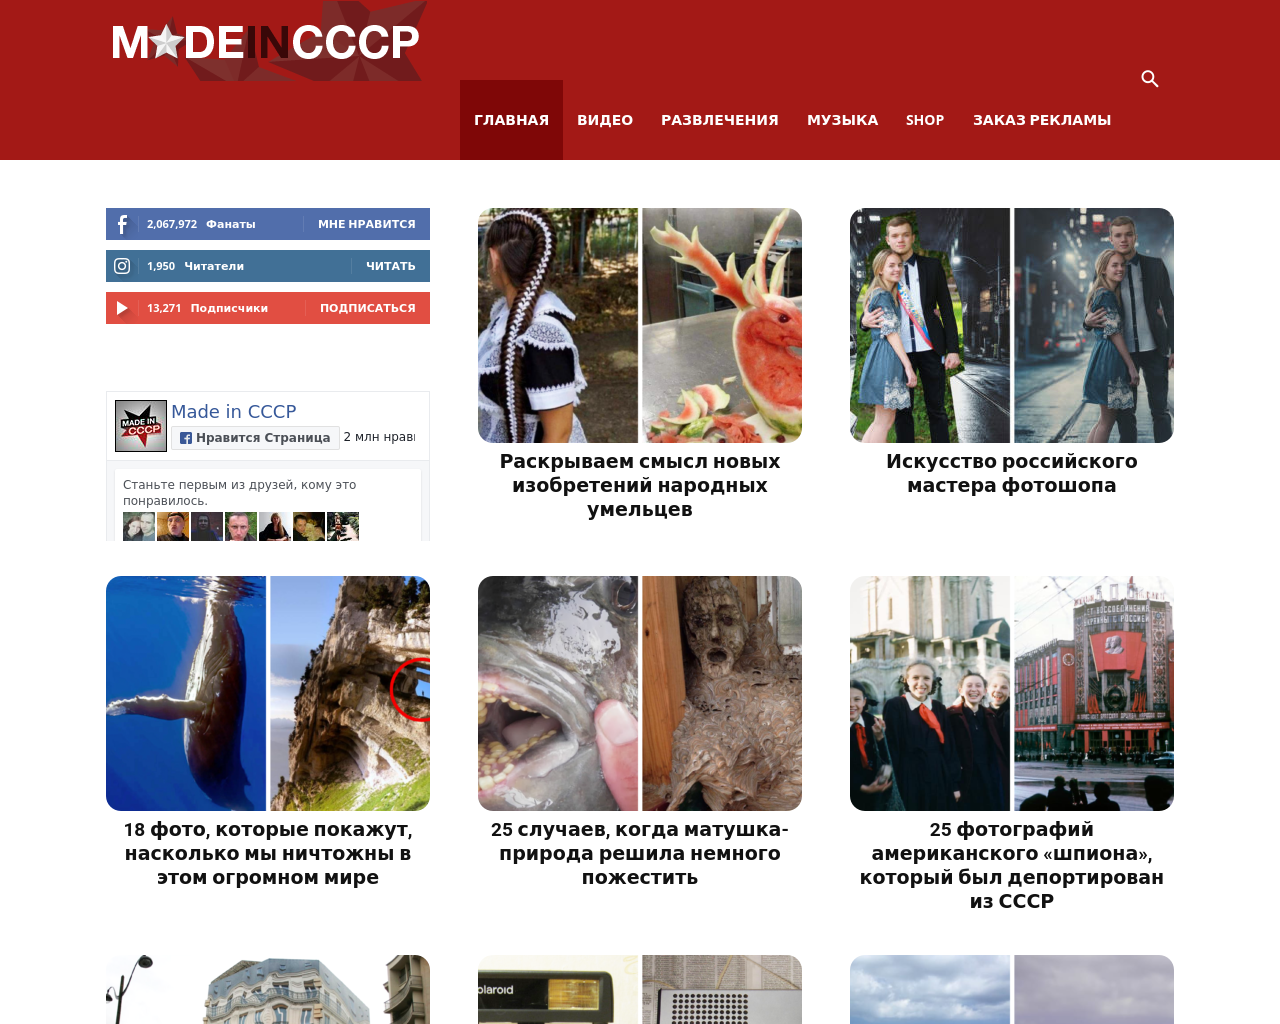 MADE-IN-CCCP-Advertising-Reviews-Pricing